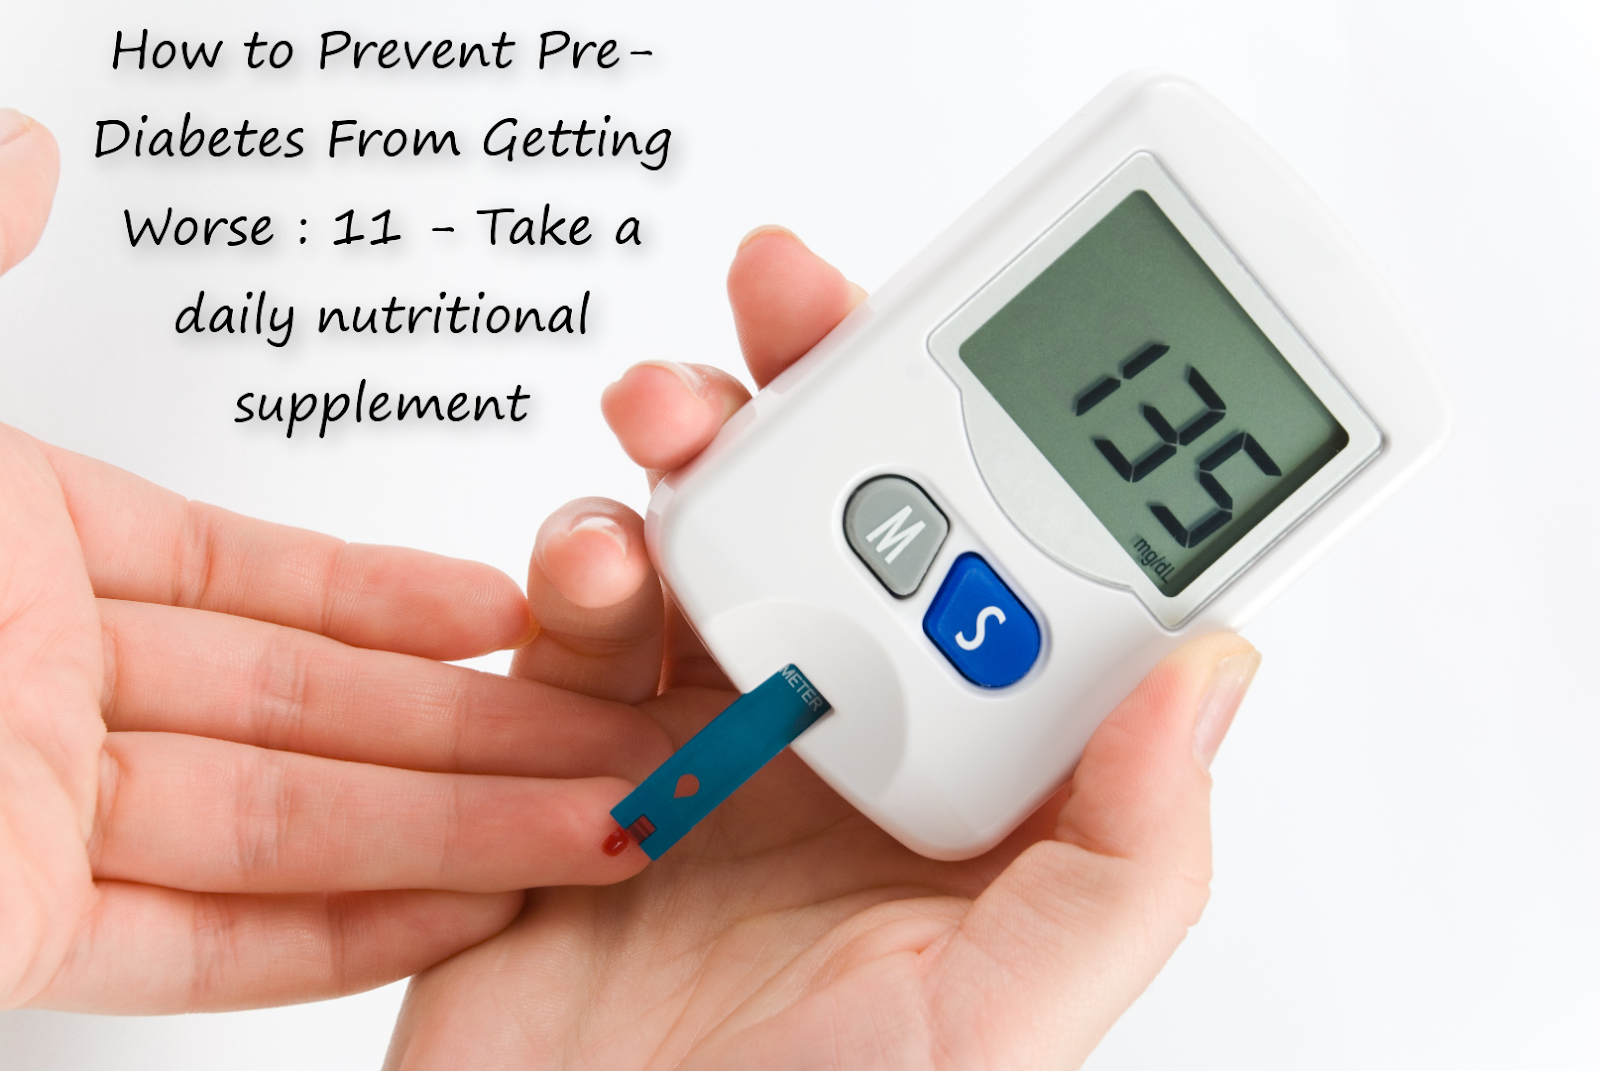 How to Prevent Pre-Diabetes From Getting Worse : 11 - Take a daily nutritional supplement